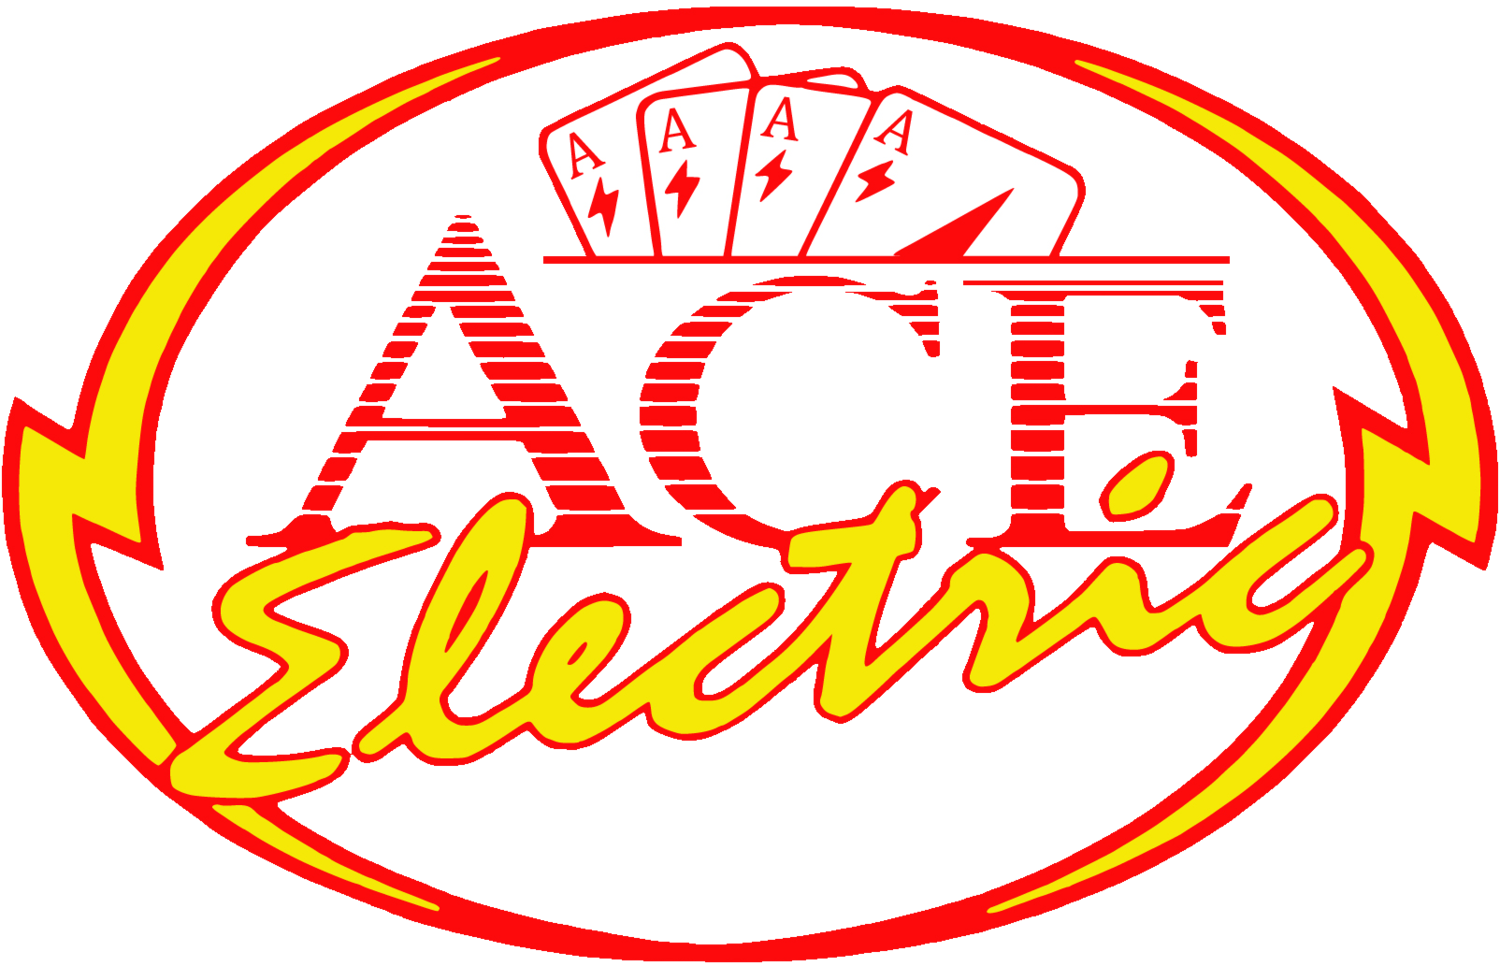 Ace Electric Sarasota